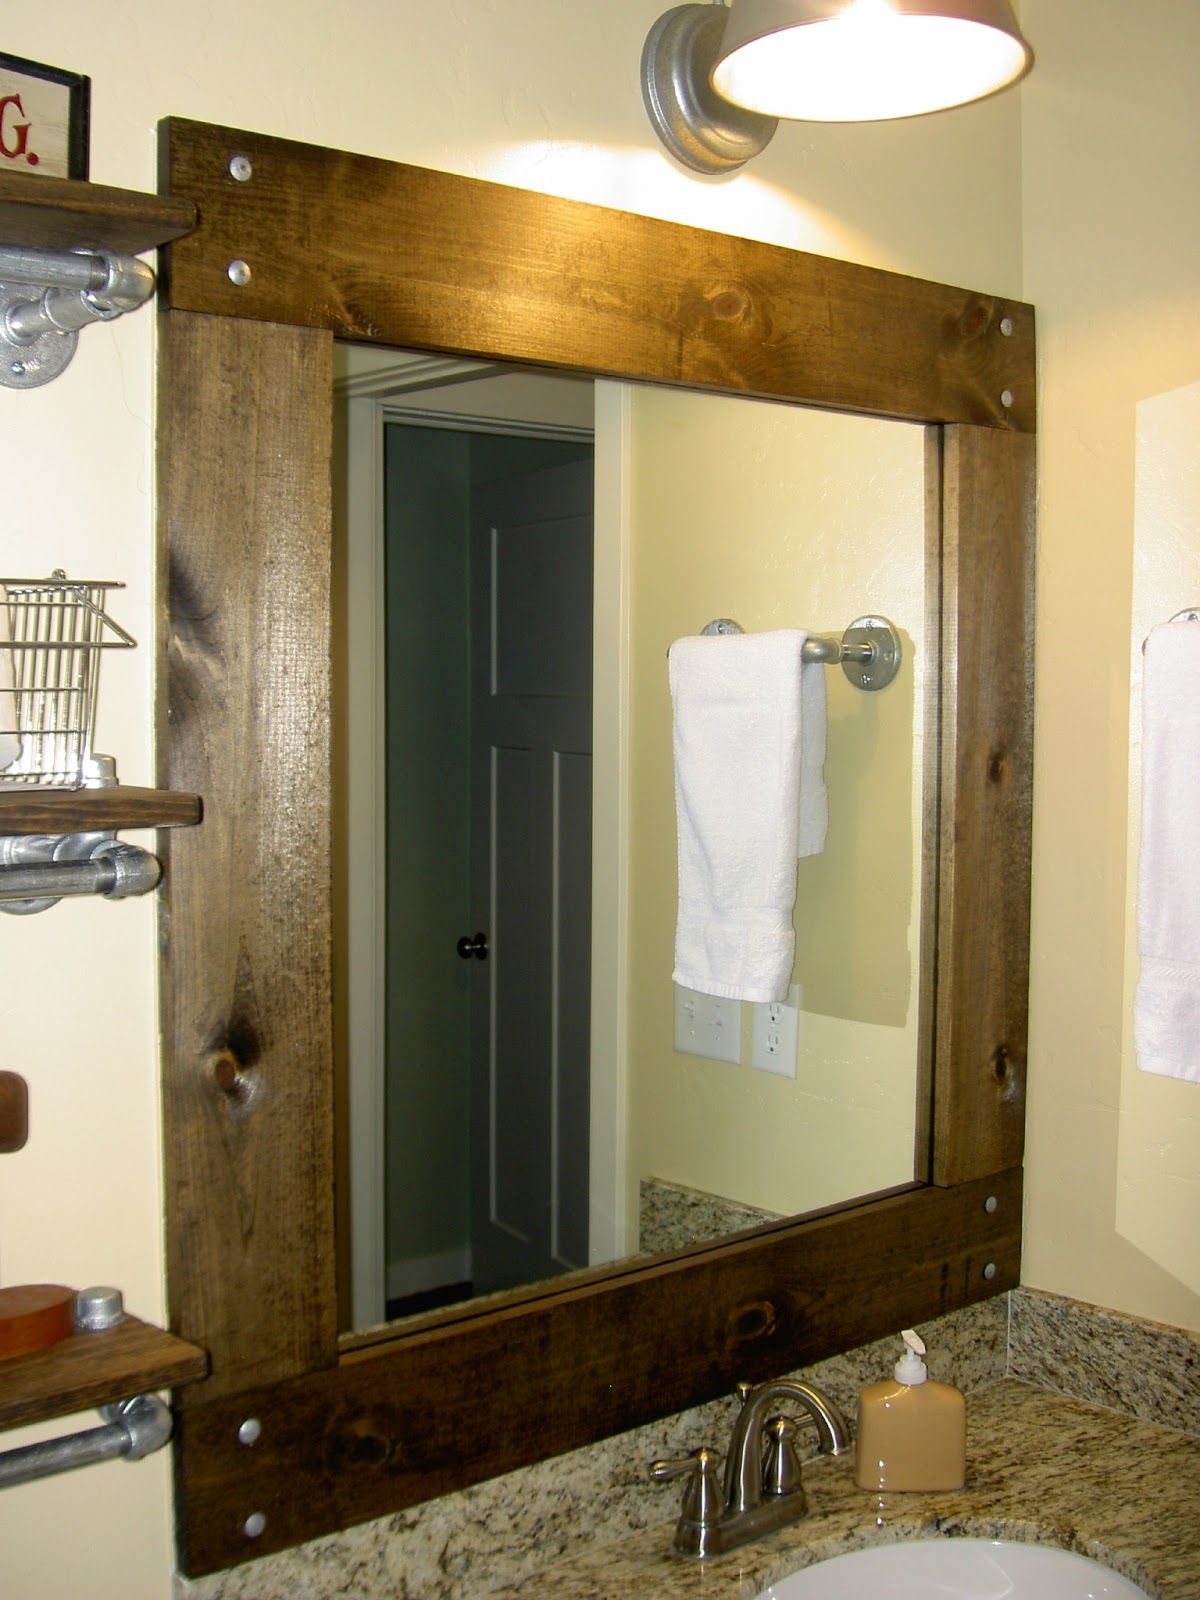 Framed Bathroom Mirrors also small bathroom wall mirrors also mirror panels also inexpensive mirrors